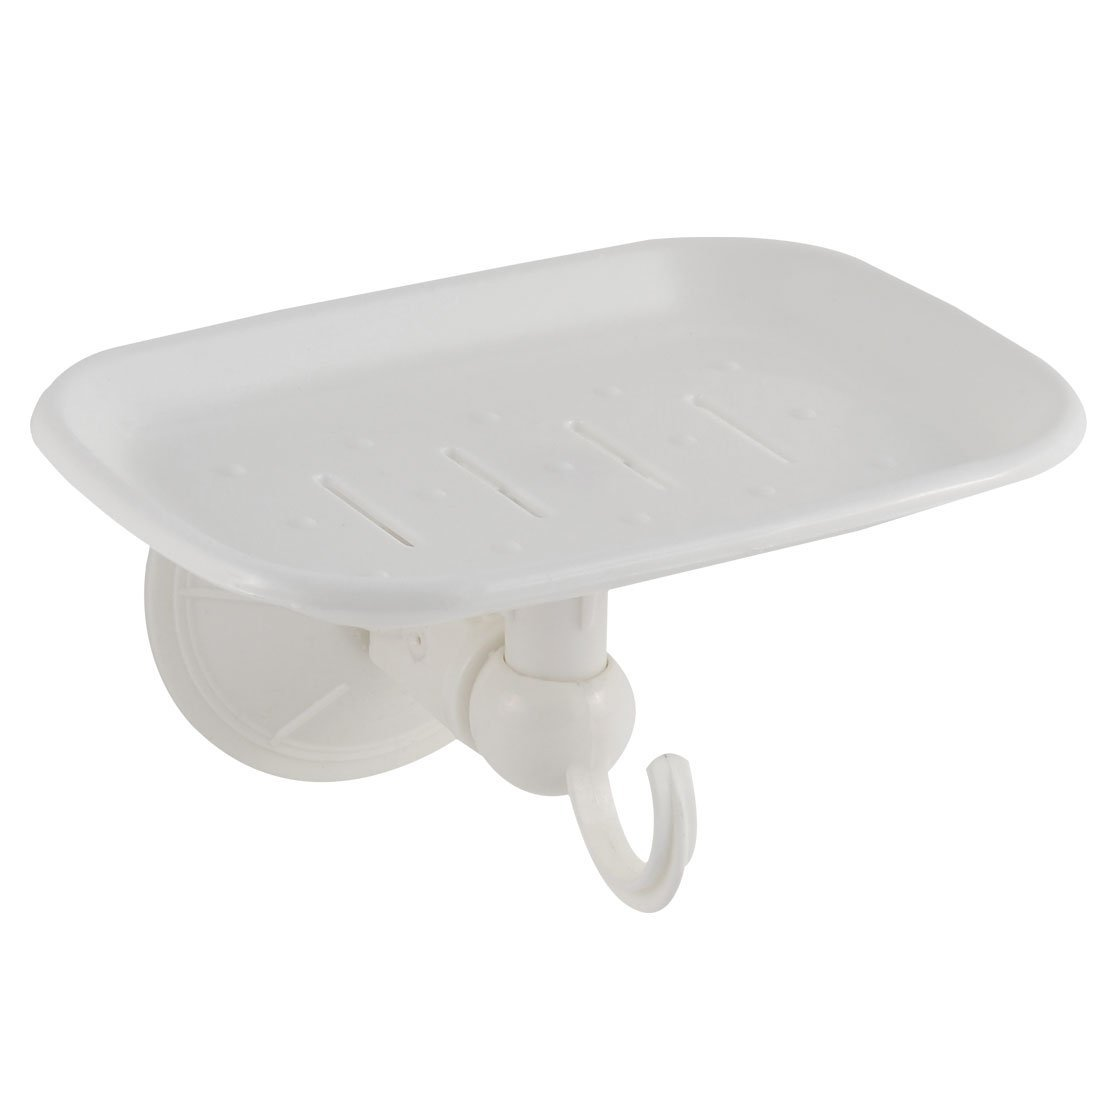 uxcell PVC Home Bathroom Wall Mounted Suction Cup Soap Plate Rack Holder Case White